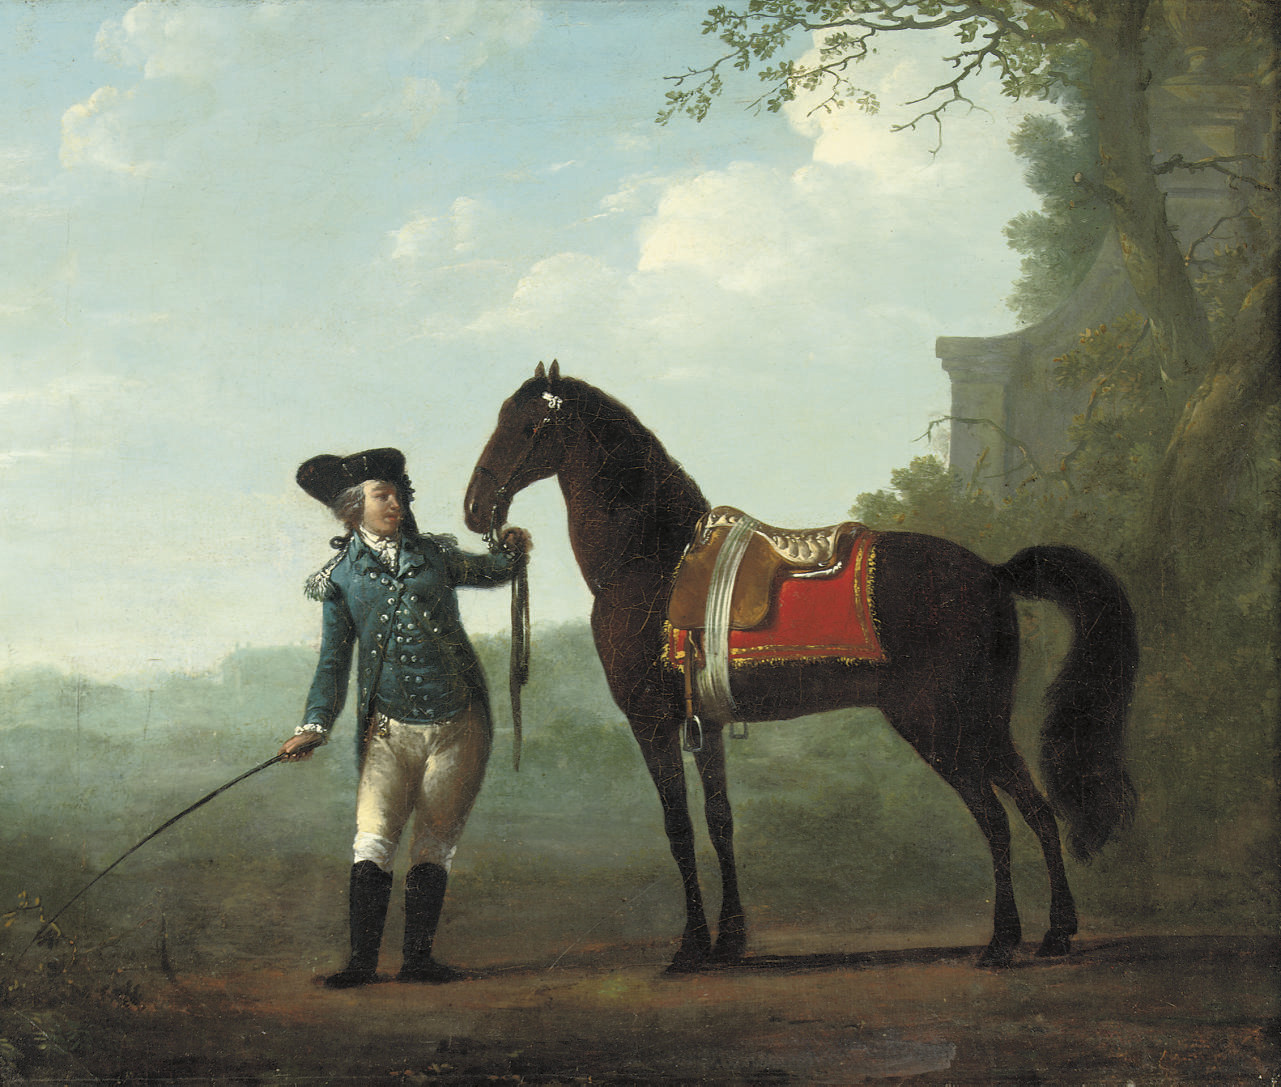 A rider with his horse in a landscape